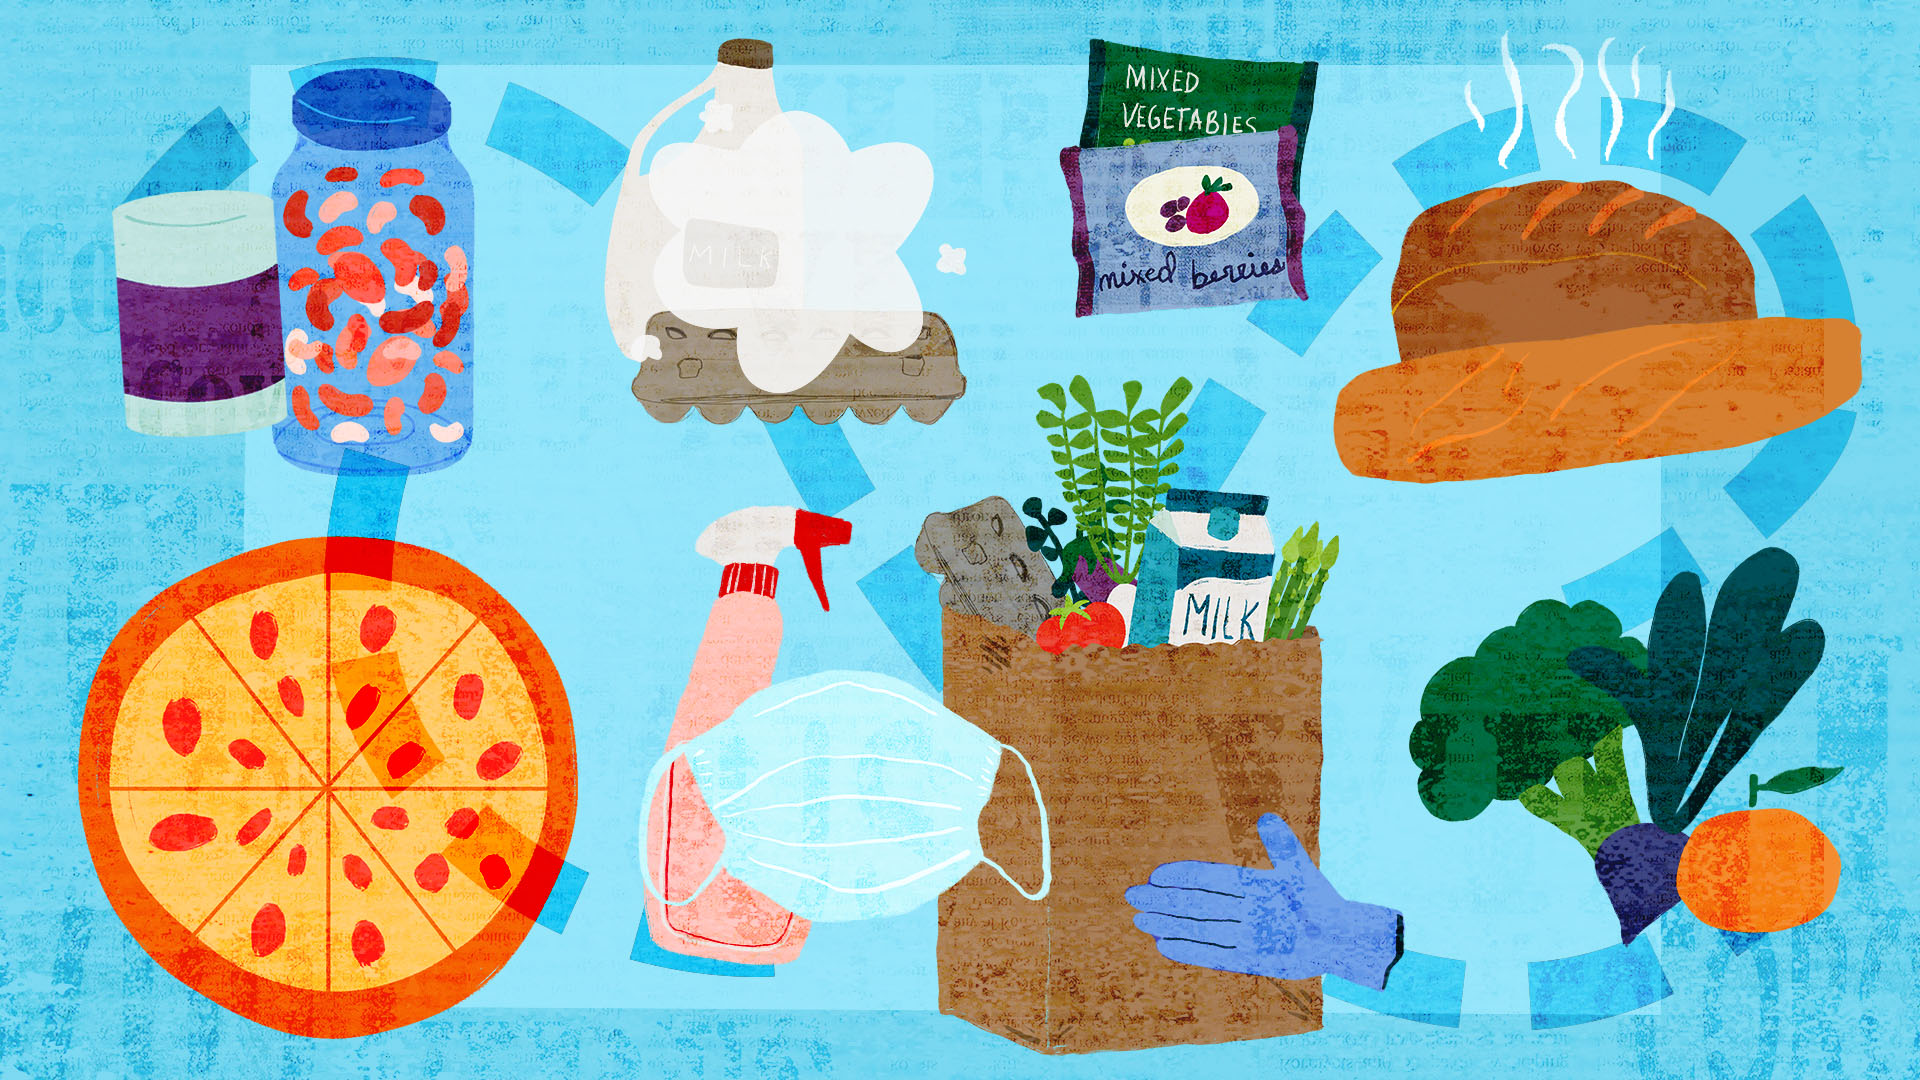 illustration of various foods on a blue background